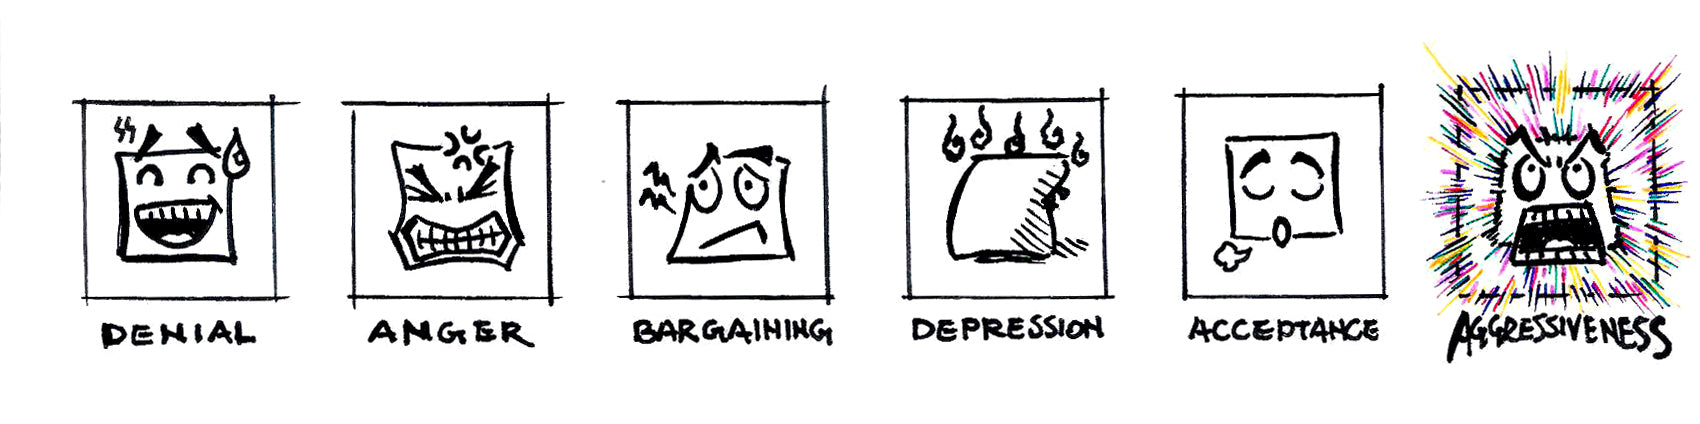 5 stages of grief, 5 stages of setback